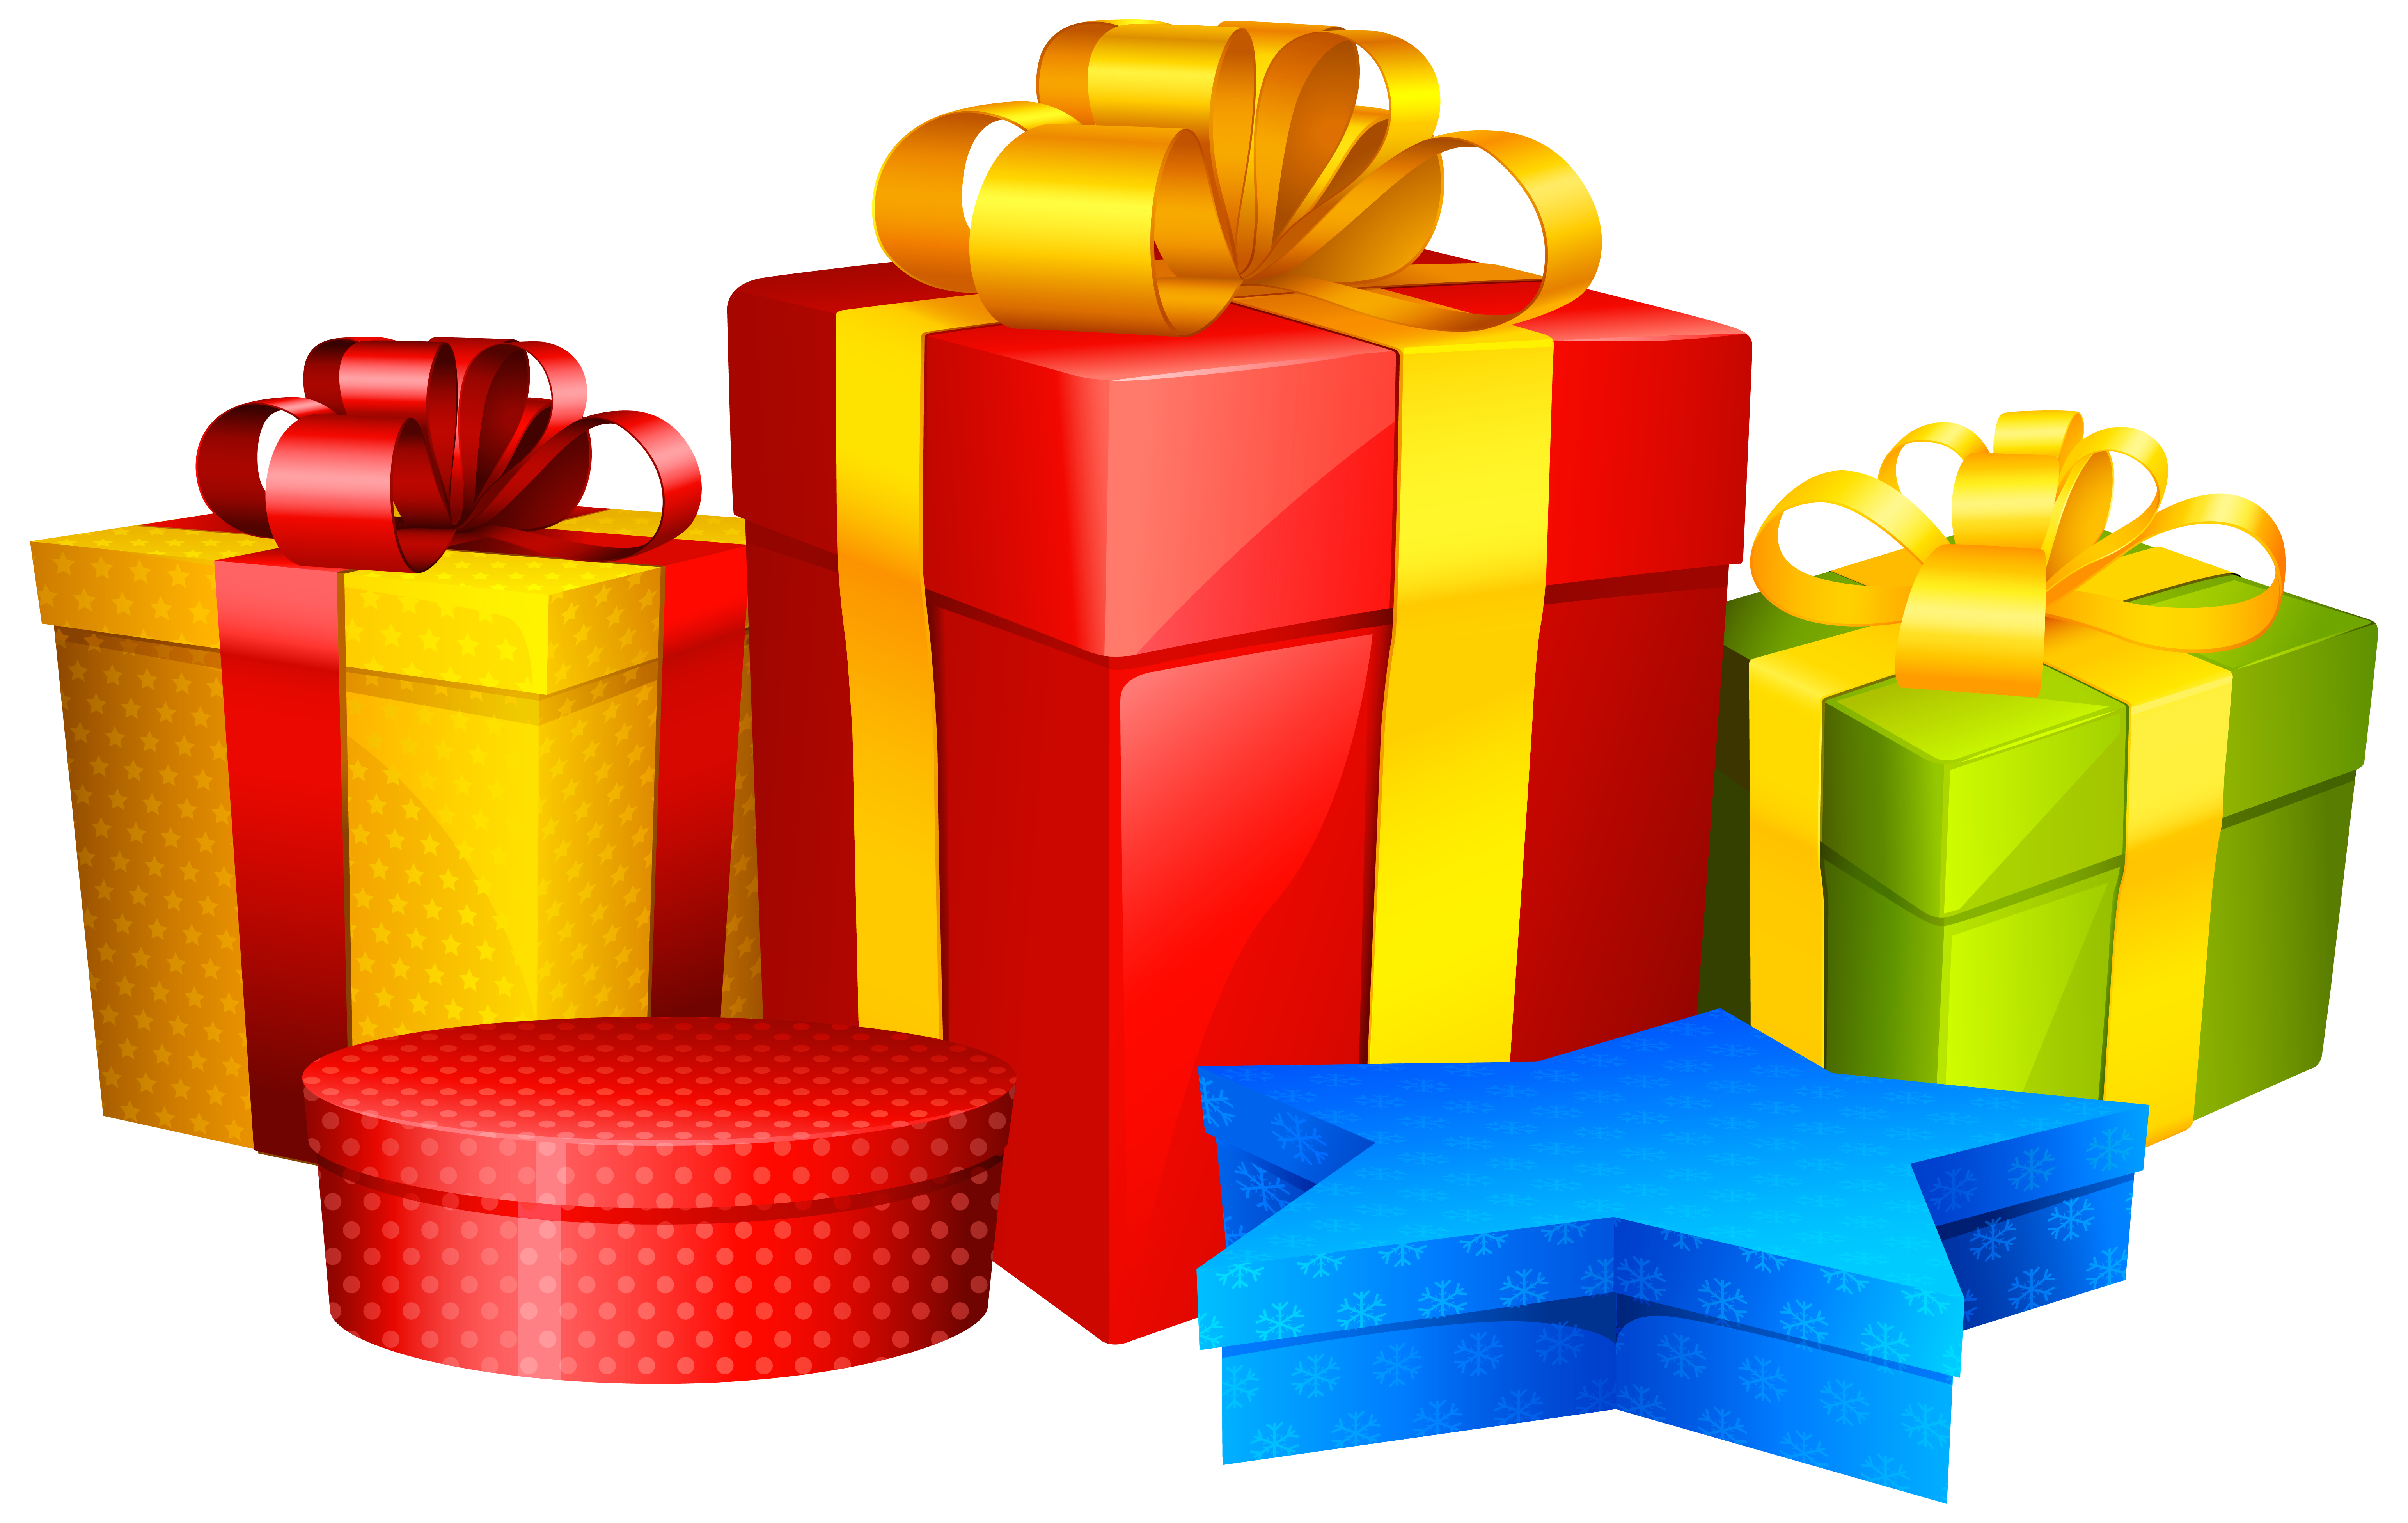 Clipart png gift. Presents clip art image